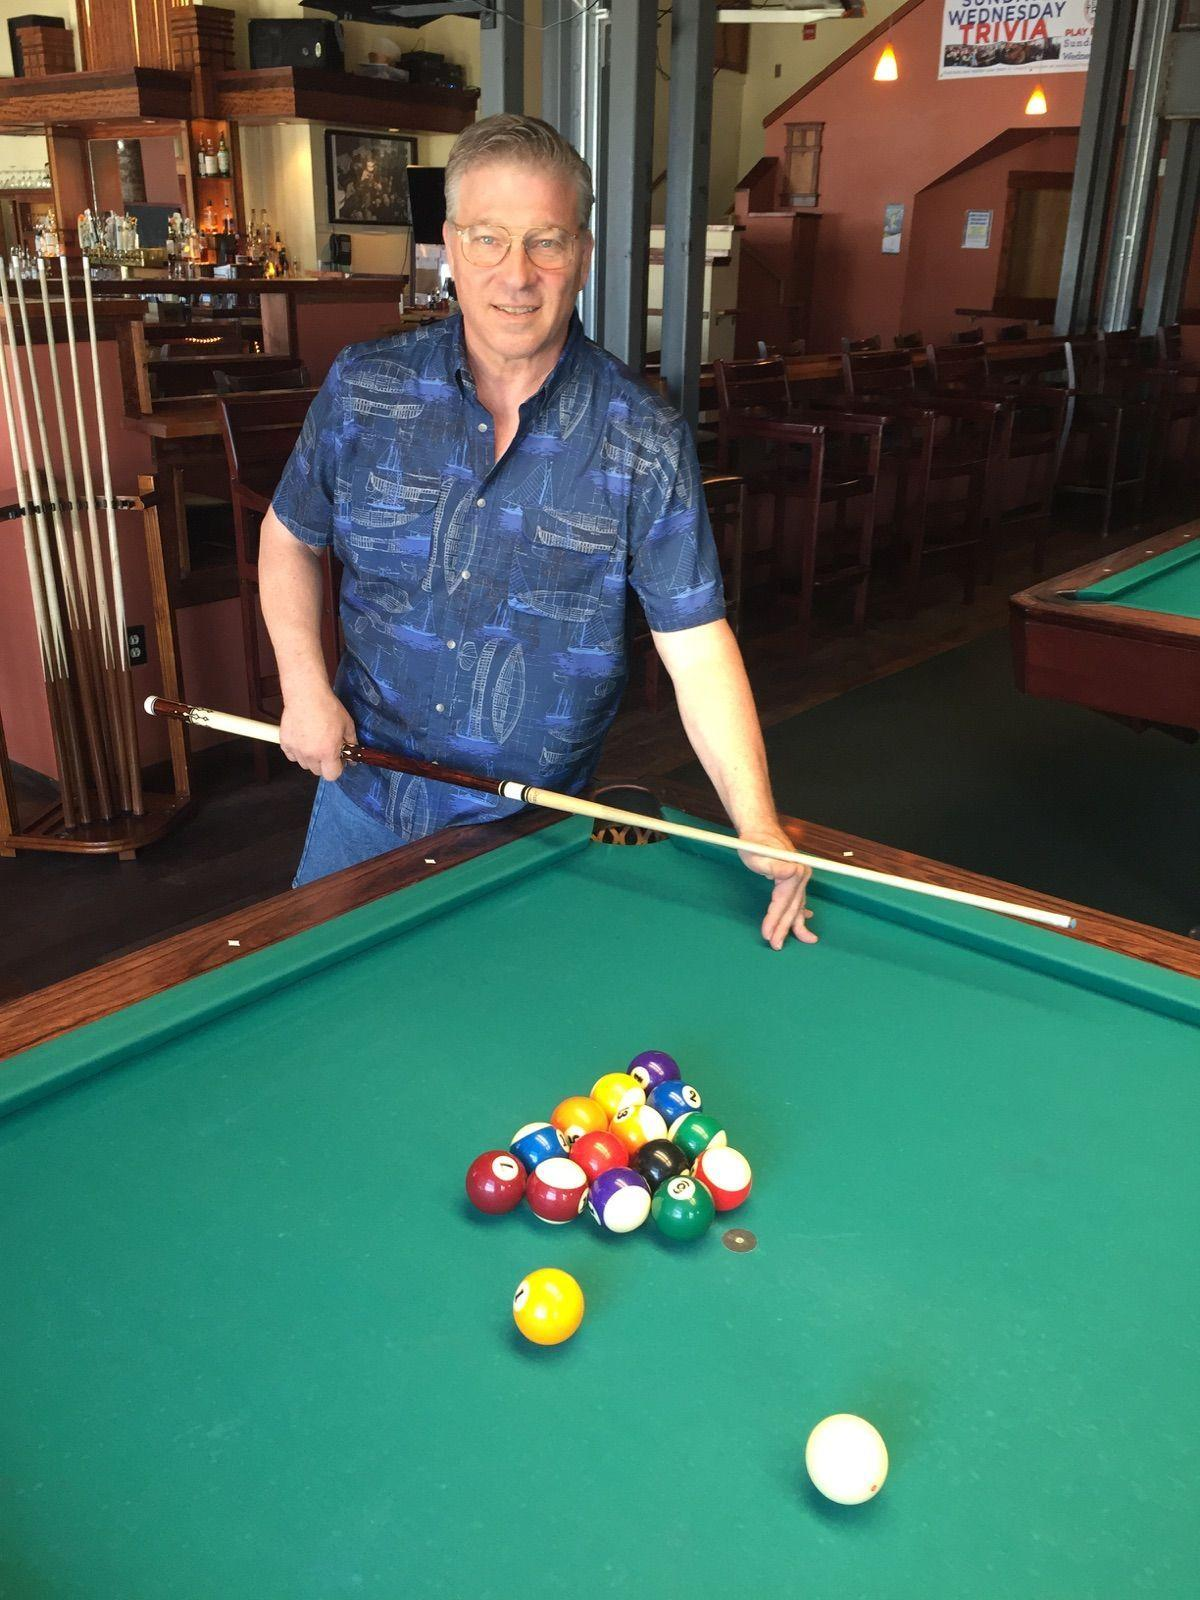 Doug moe a local pool pros new york moment madison ron dobosenski is the house pool professional at the brass ring in madison junglespirit Images